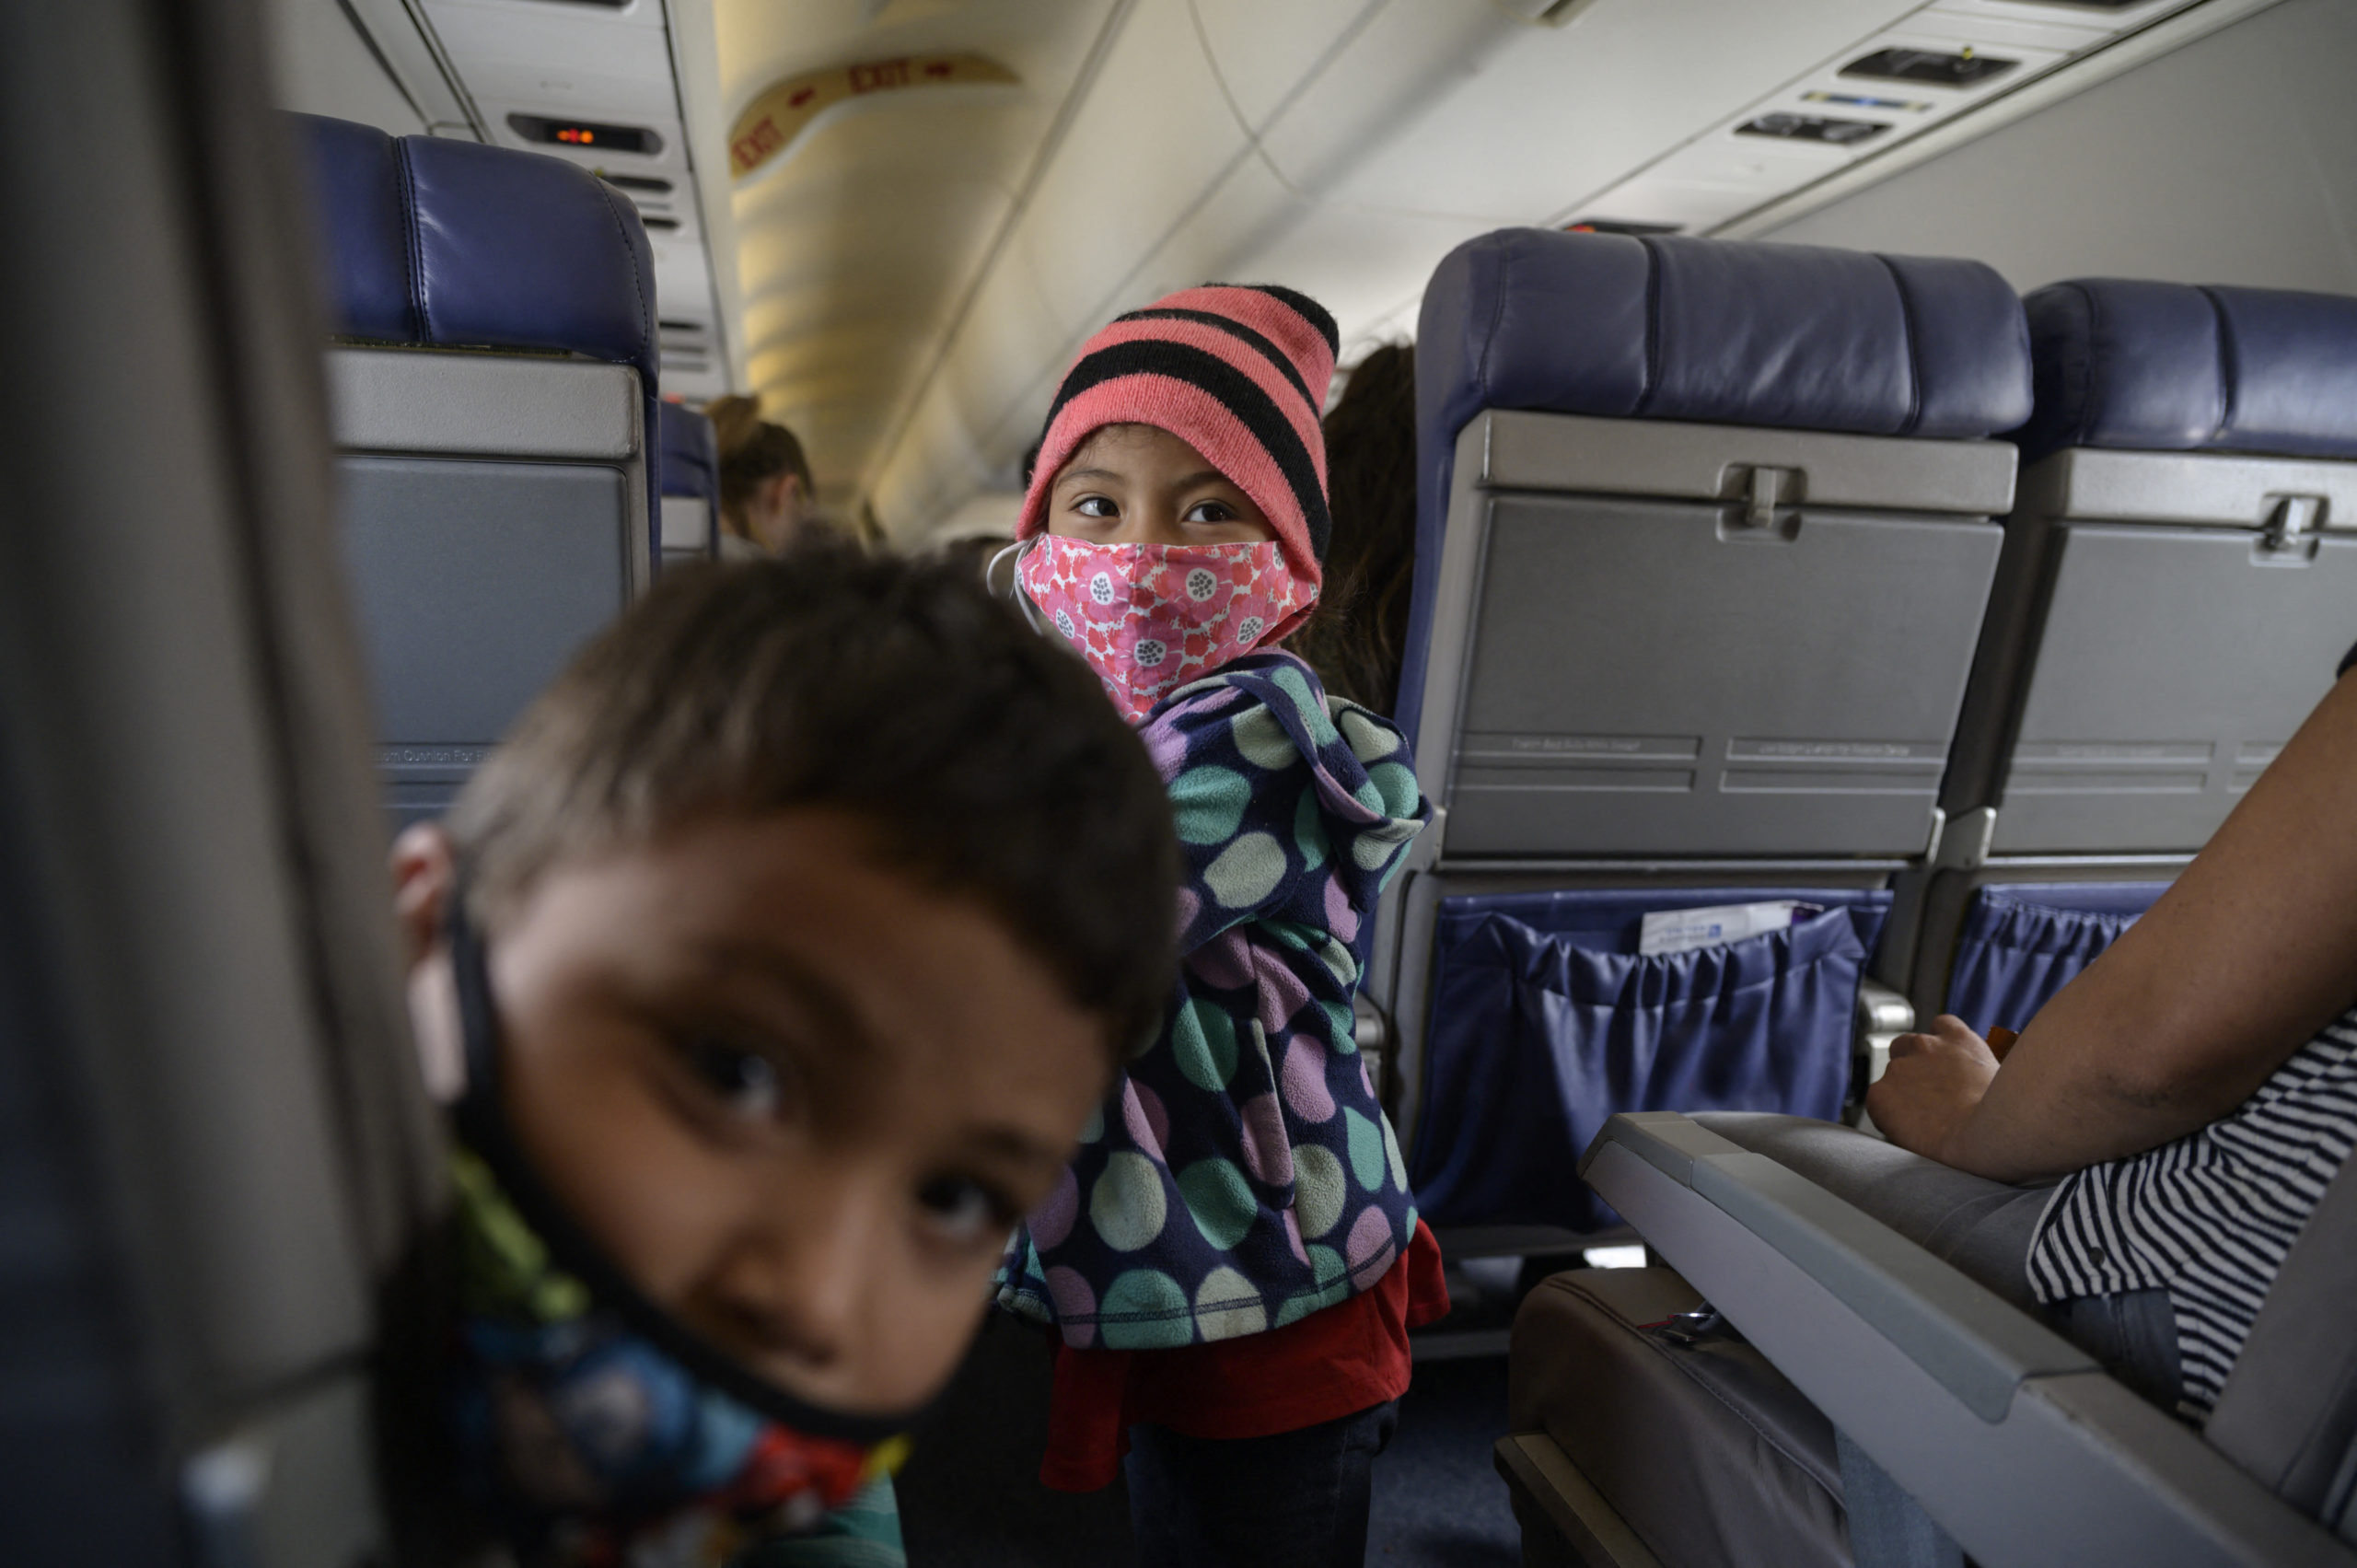 Siblings Dariel (L) and Diana (C) from El Salvador travel on a flight on March 30, 2021 from McAllen to Houston following their release from a US government holding facility for illegal migrants seeking asylum in McAllen, Texas.. (Photo by Ed JONES / AFP) (Photo by ED JONES/AFP via Getty Images)